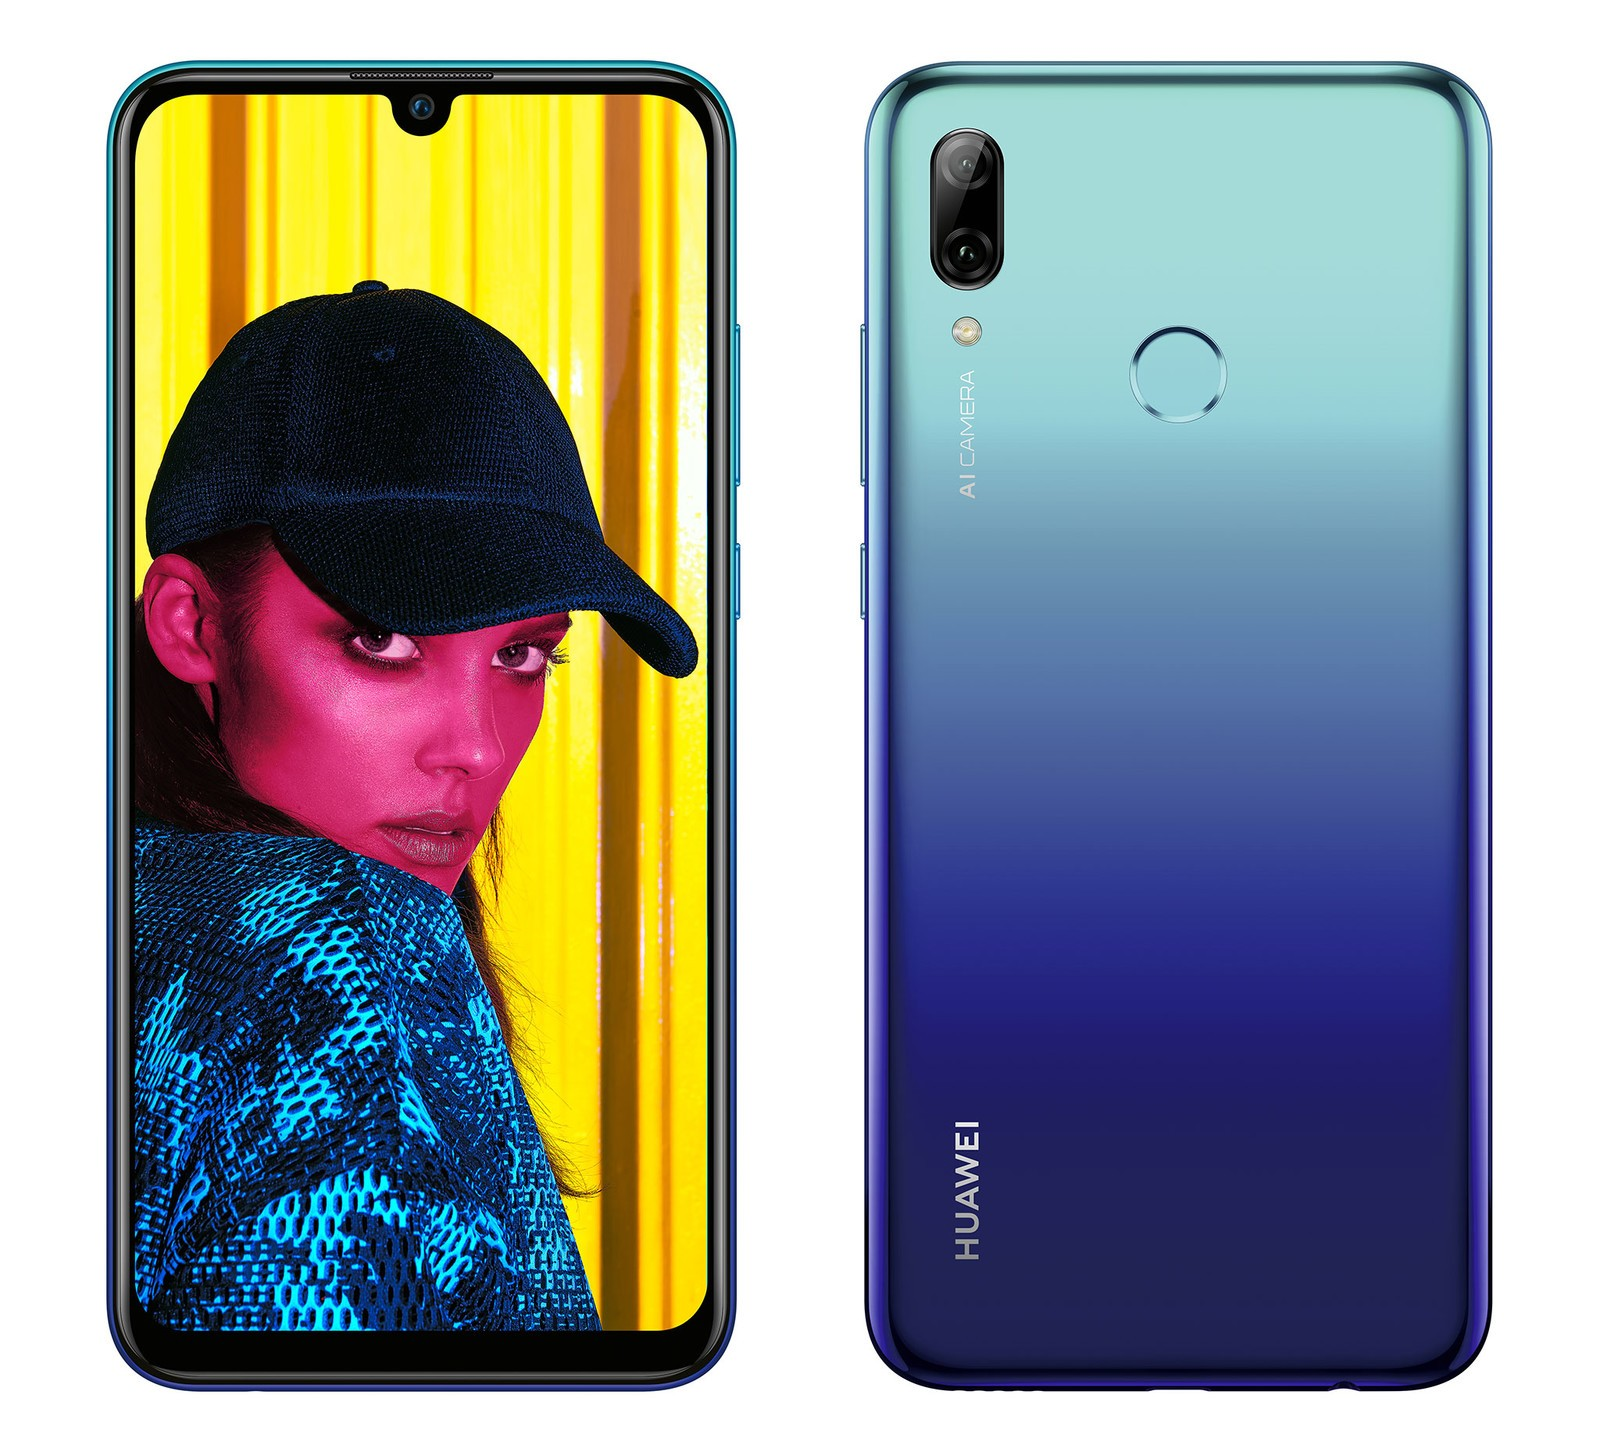 e2691388a6a00 Huawei P Smart (2019) will be available in select markets stating in Europe.